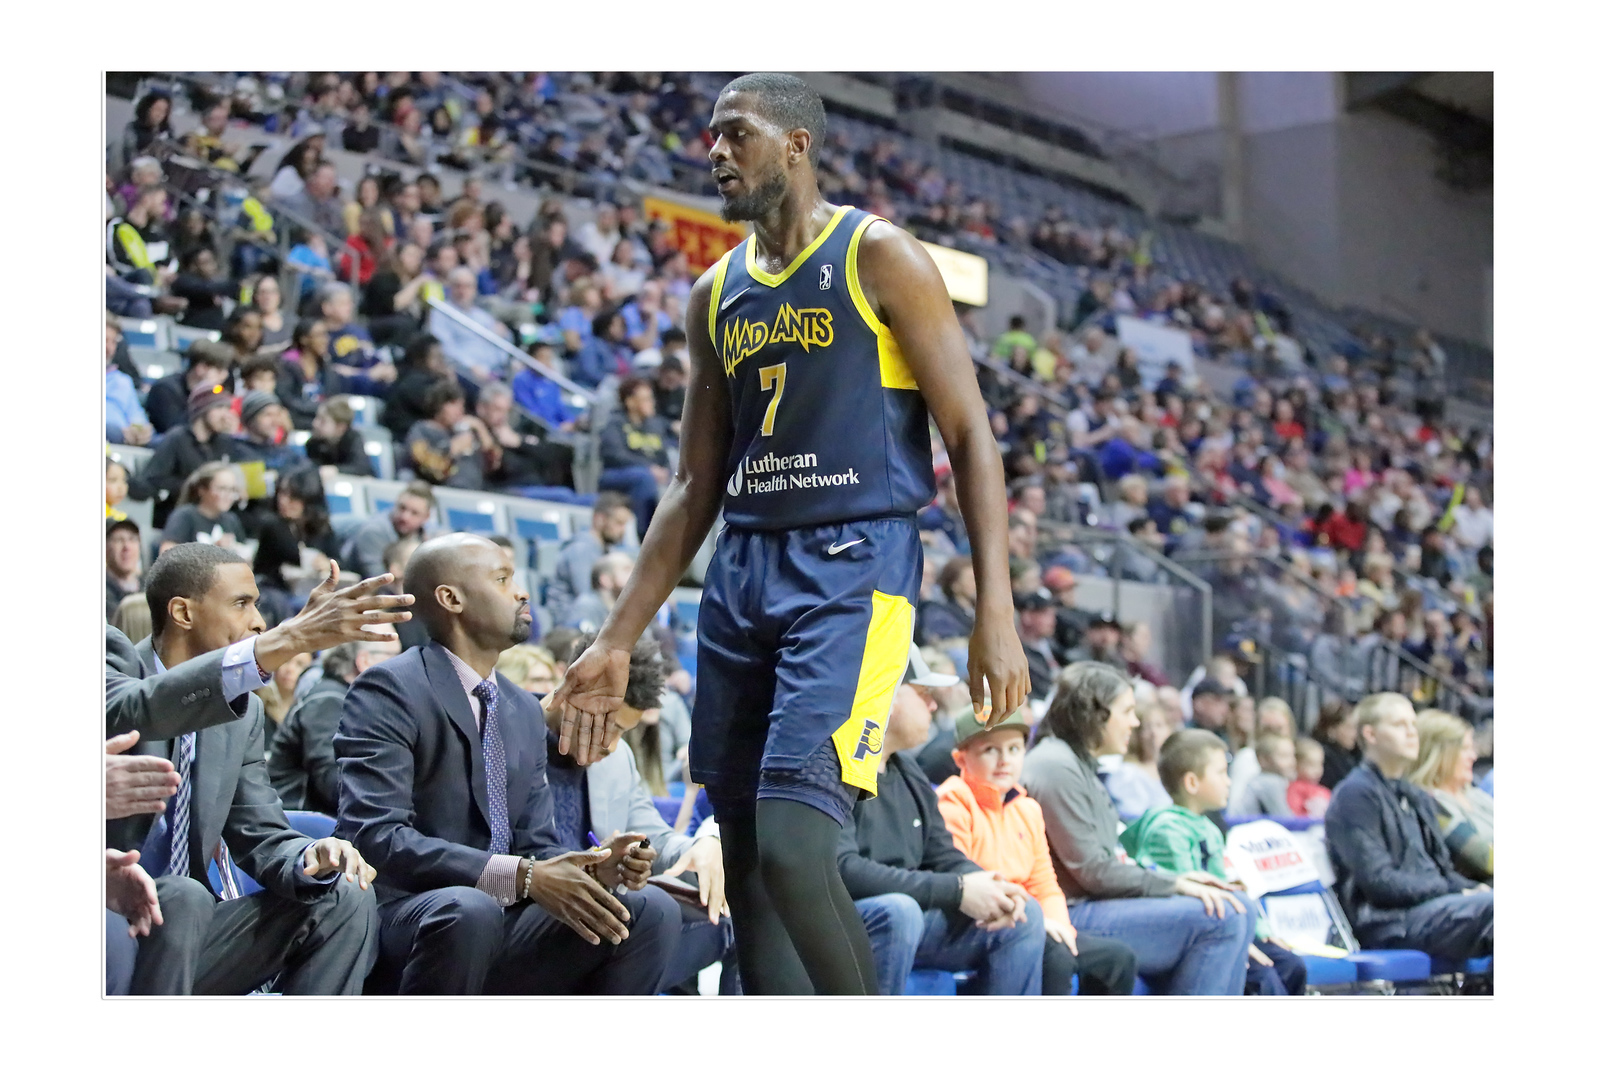 IMAGE: https://photos.smugmug.com/Sports-Events/Mad-Ants-Current-Season/Mar-8-2019/i-VQRrHD4/0/52c9d469/X3/FX8A9348a-X3.jpg